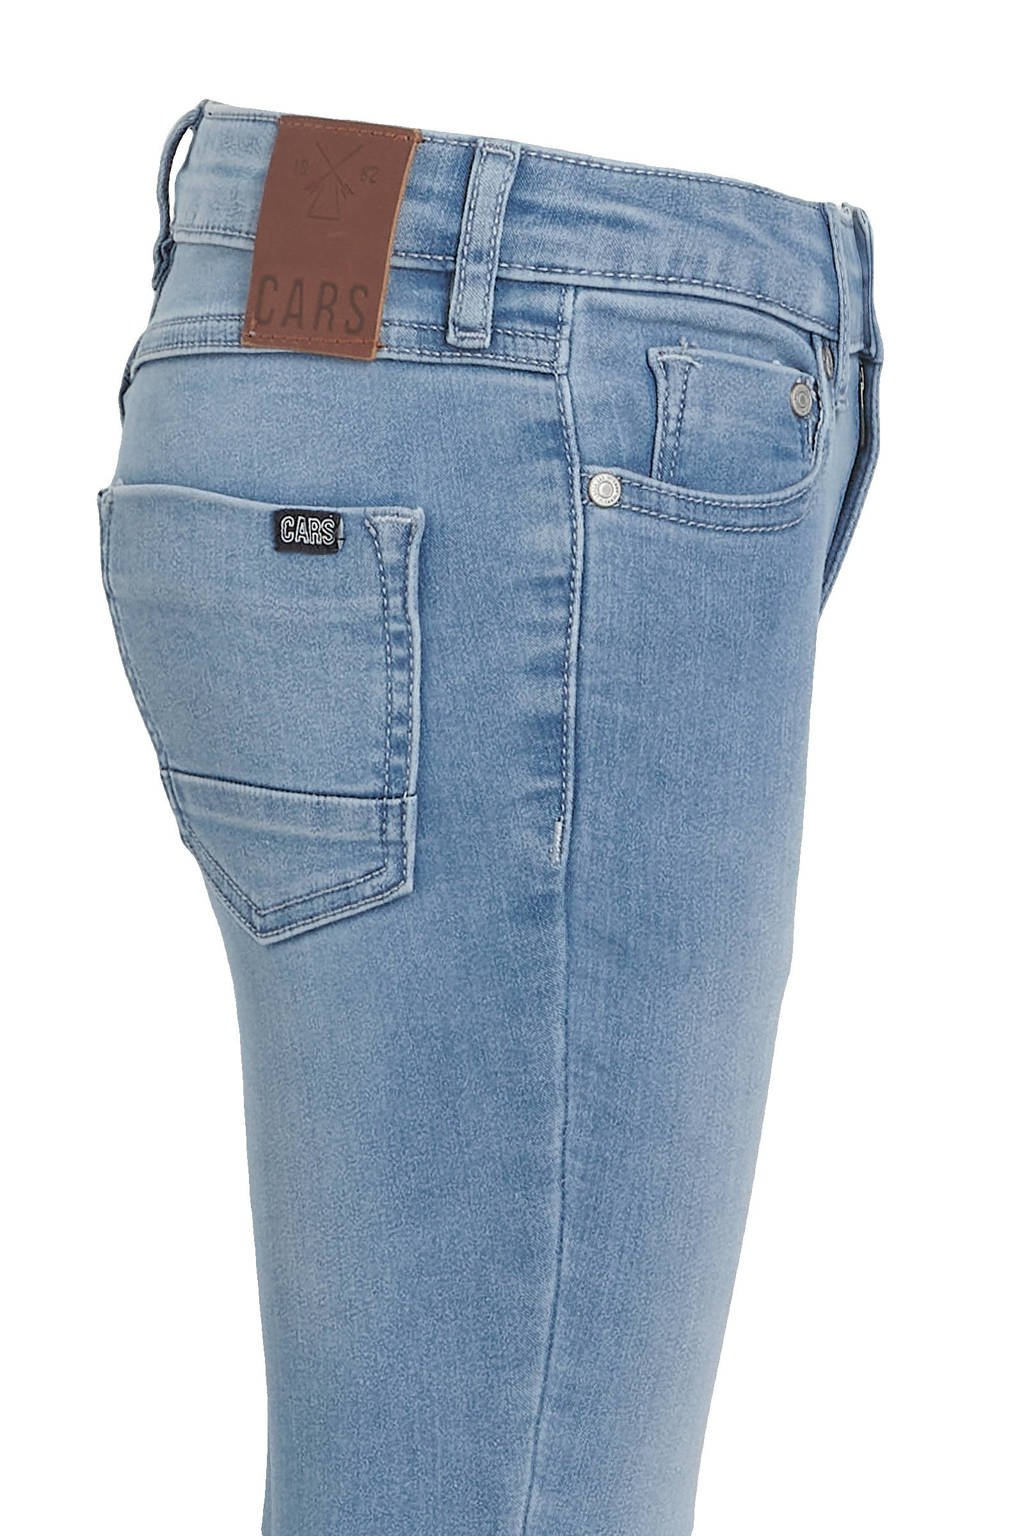 Cars high waist skinny jeans Eliza bleached used, Bleached used